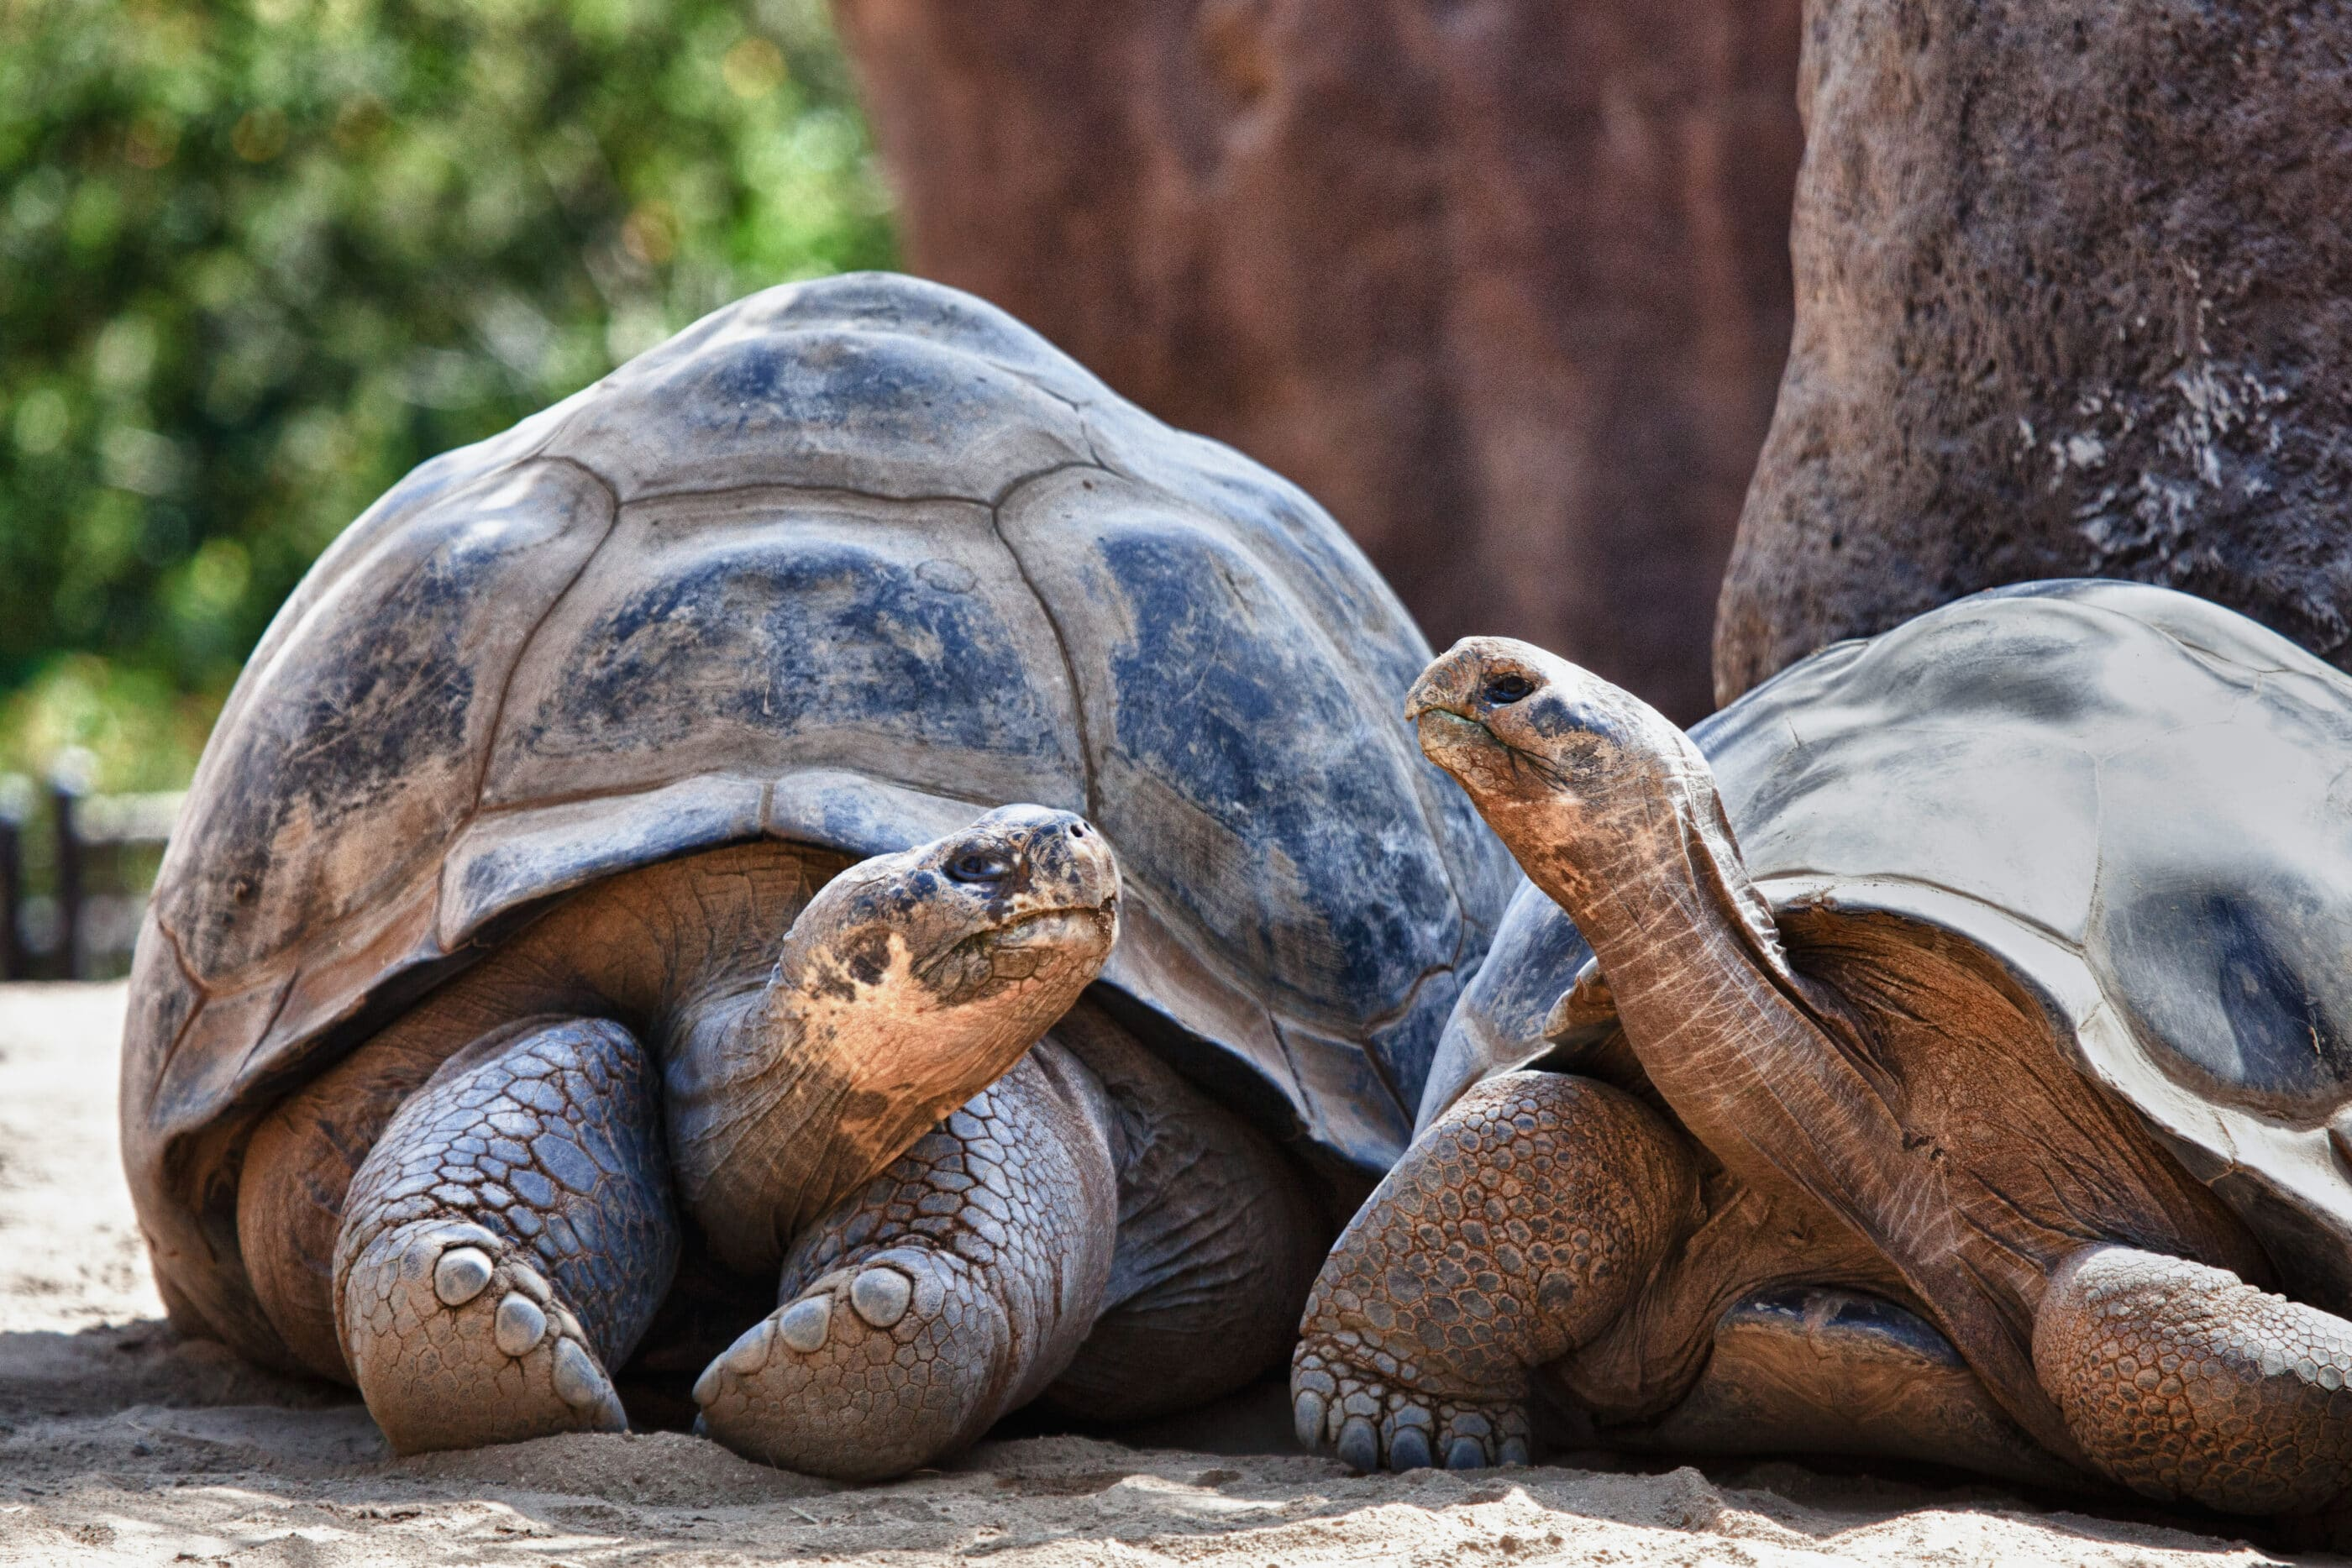 To Galapagos tortoises look at each other in their habitat.